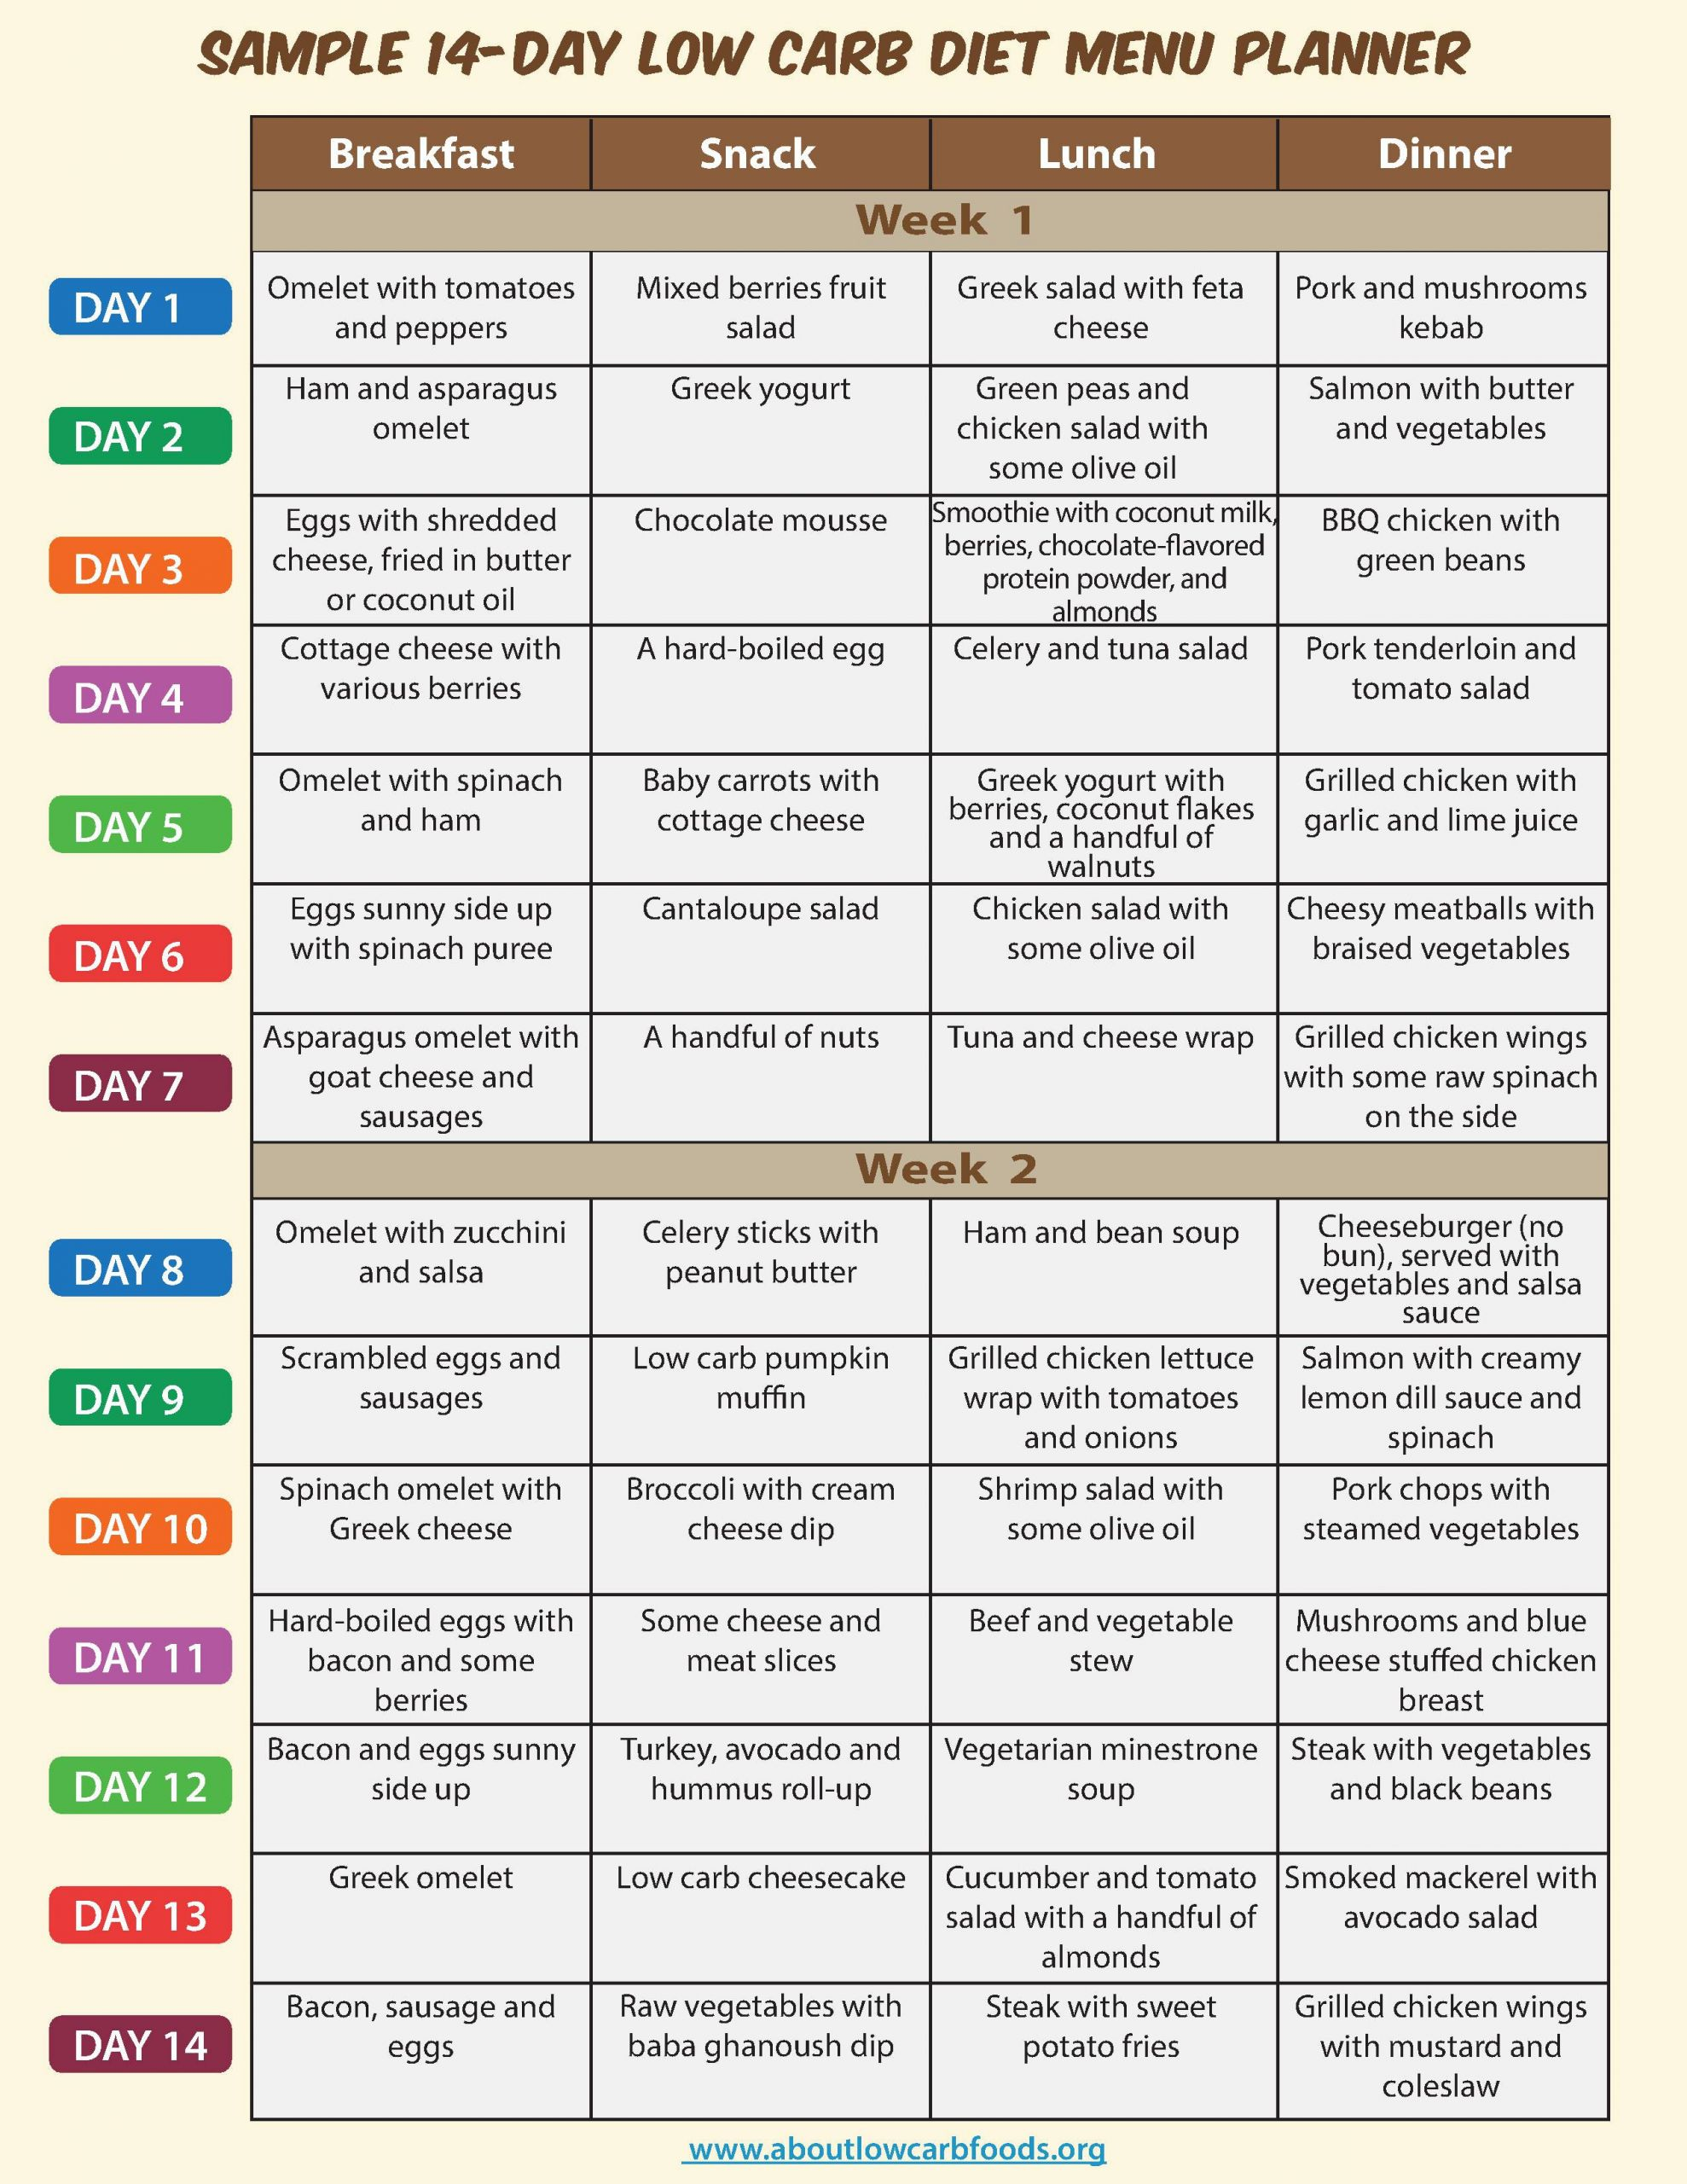 Low Carb Diet Plan  Atkins healthy tweight reduction plan 2015